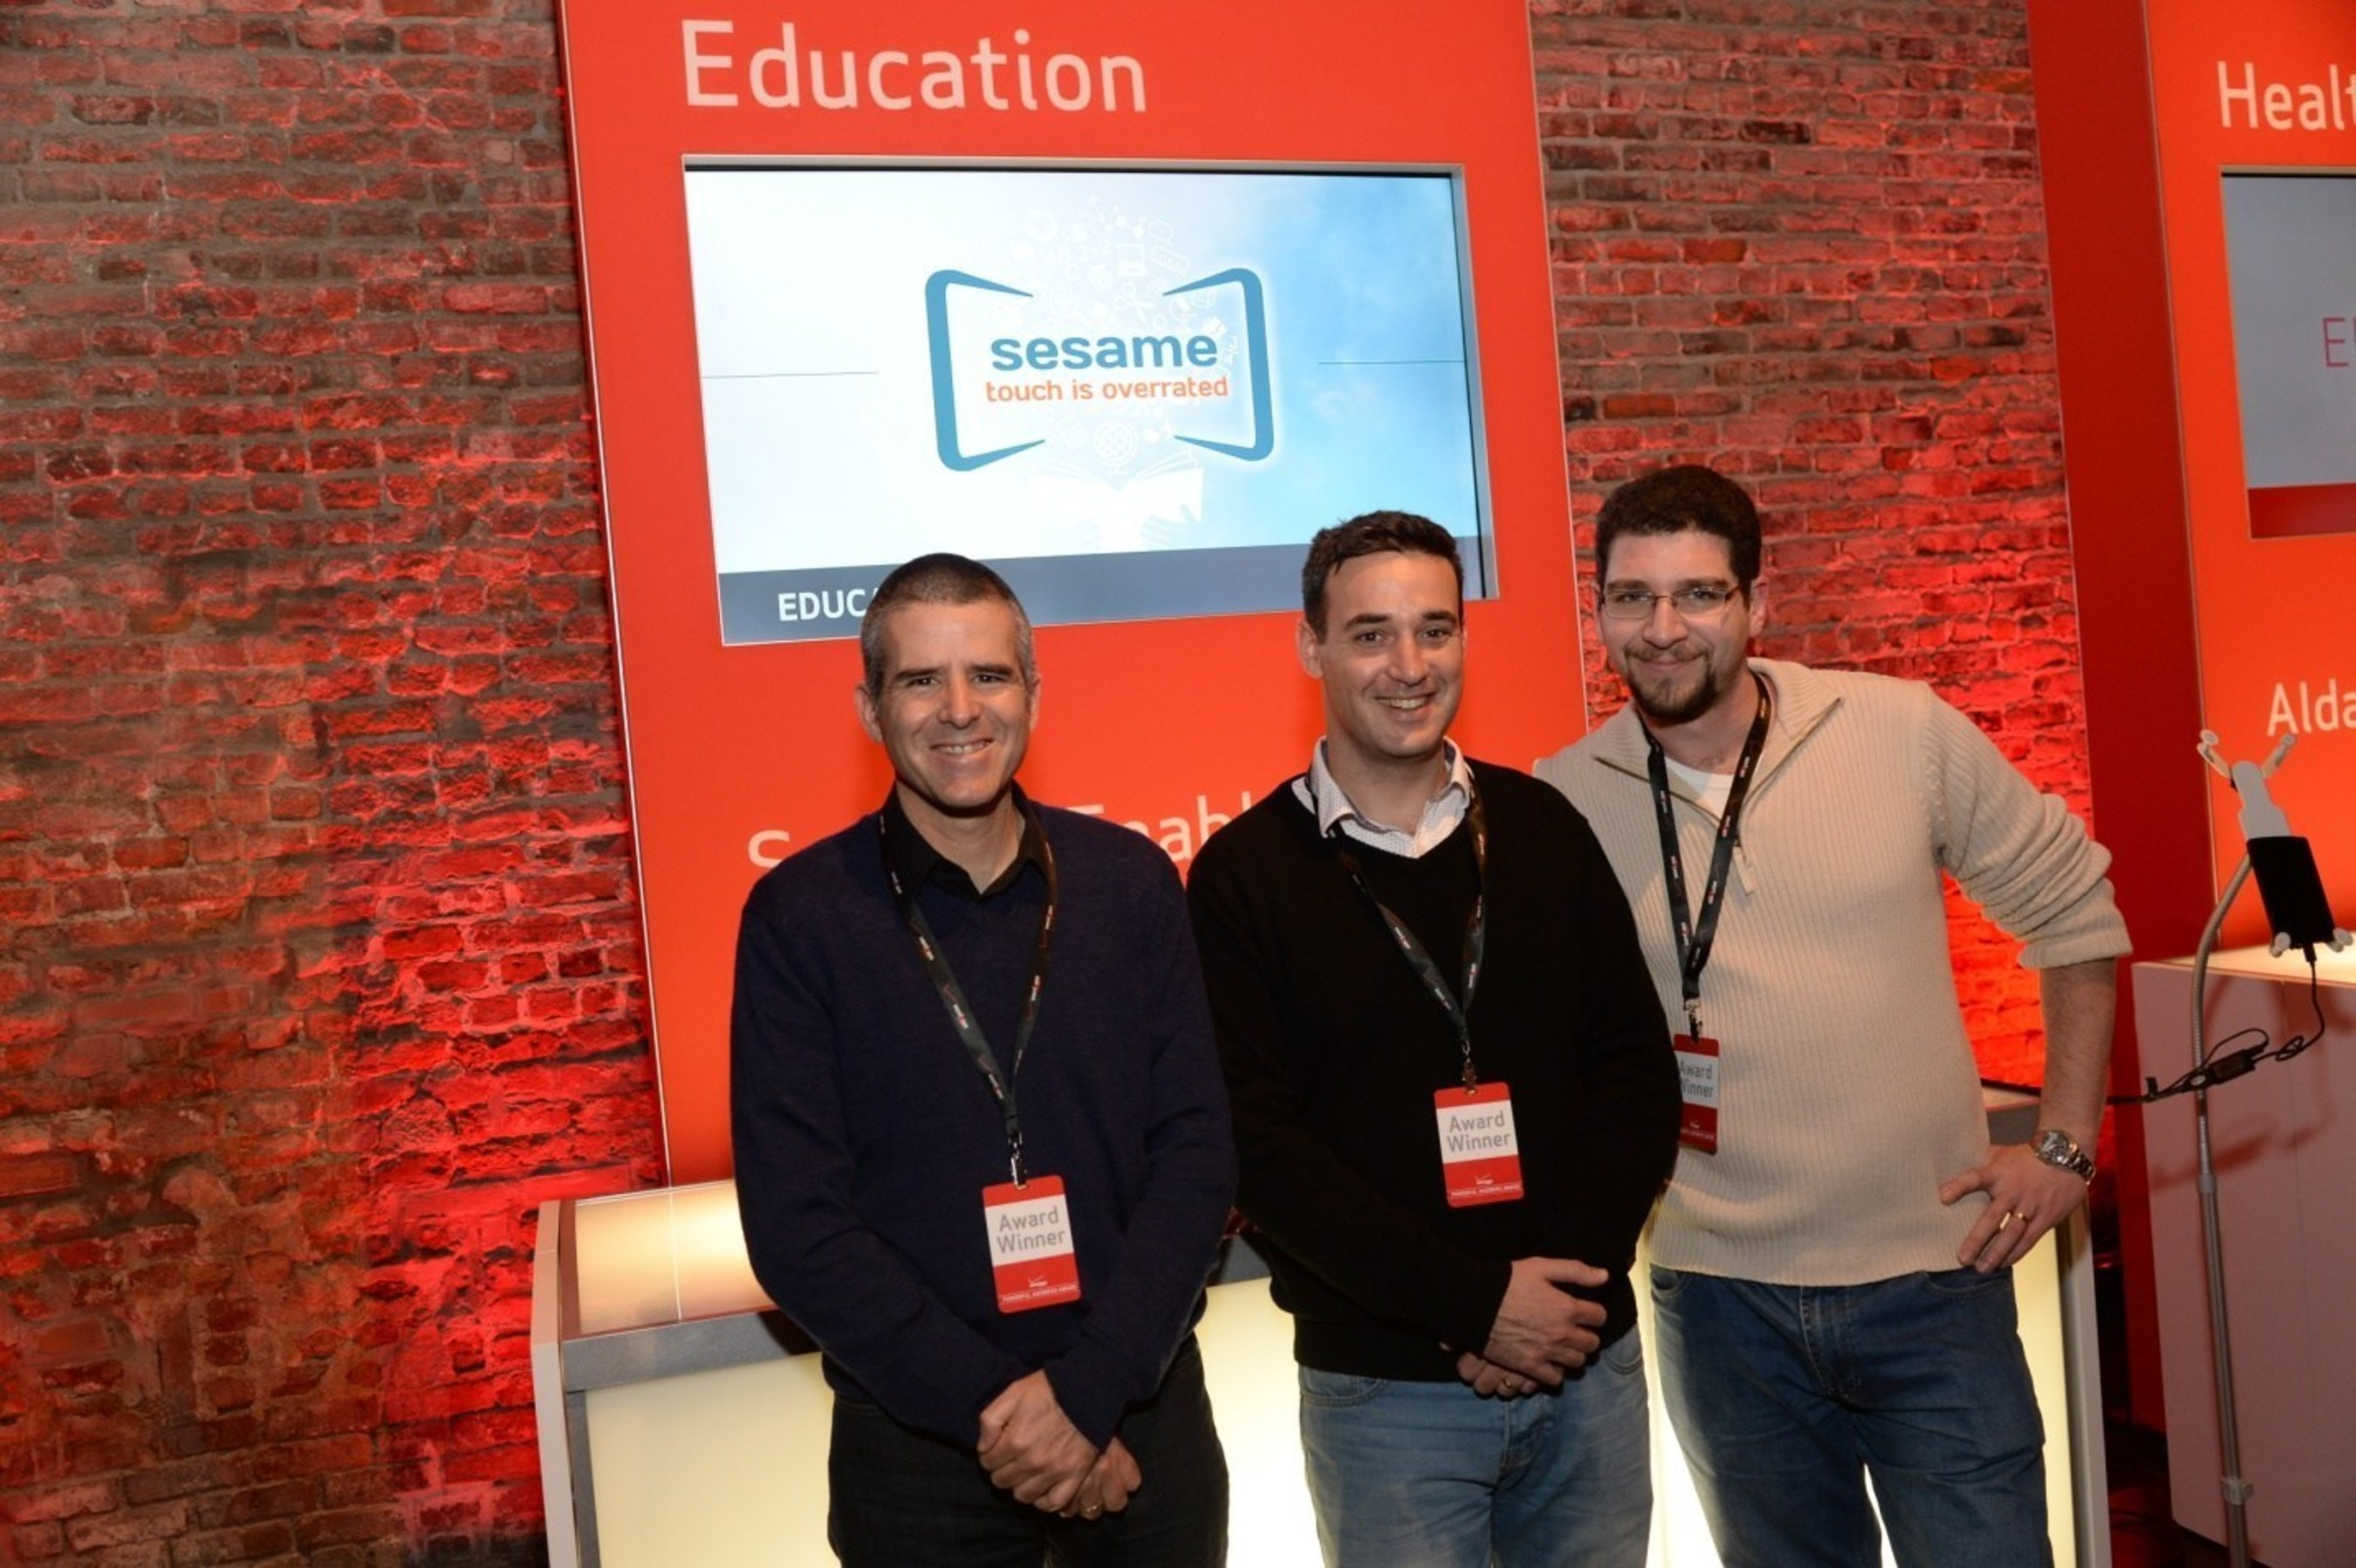 $1M Winner in the education category: Sesame Enable - Based in Israel, this company has developed touch-free smartphone and tablet technology for children and adults for whom touch is not possible. According to Sesame Enable, of the 5.6 million paralyzed people in the U.S., 150,000 are children who cannot move their hands. The technology integrates with games and applications and allows those children access to educational opportunities previously inaccessible to them.